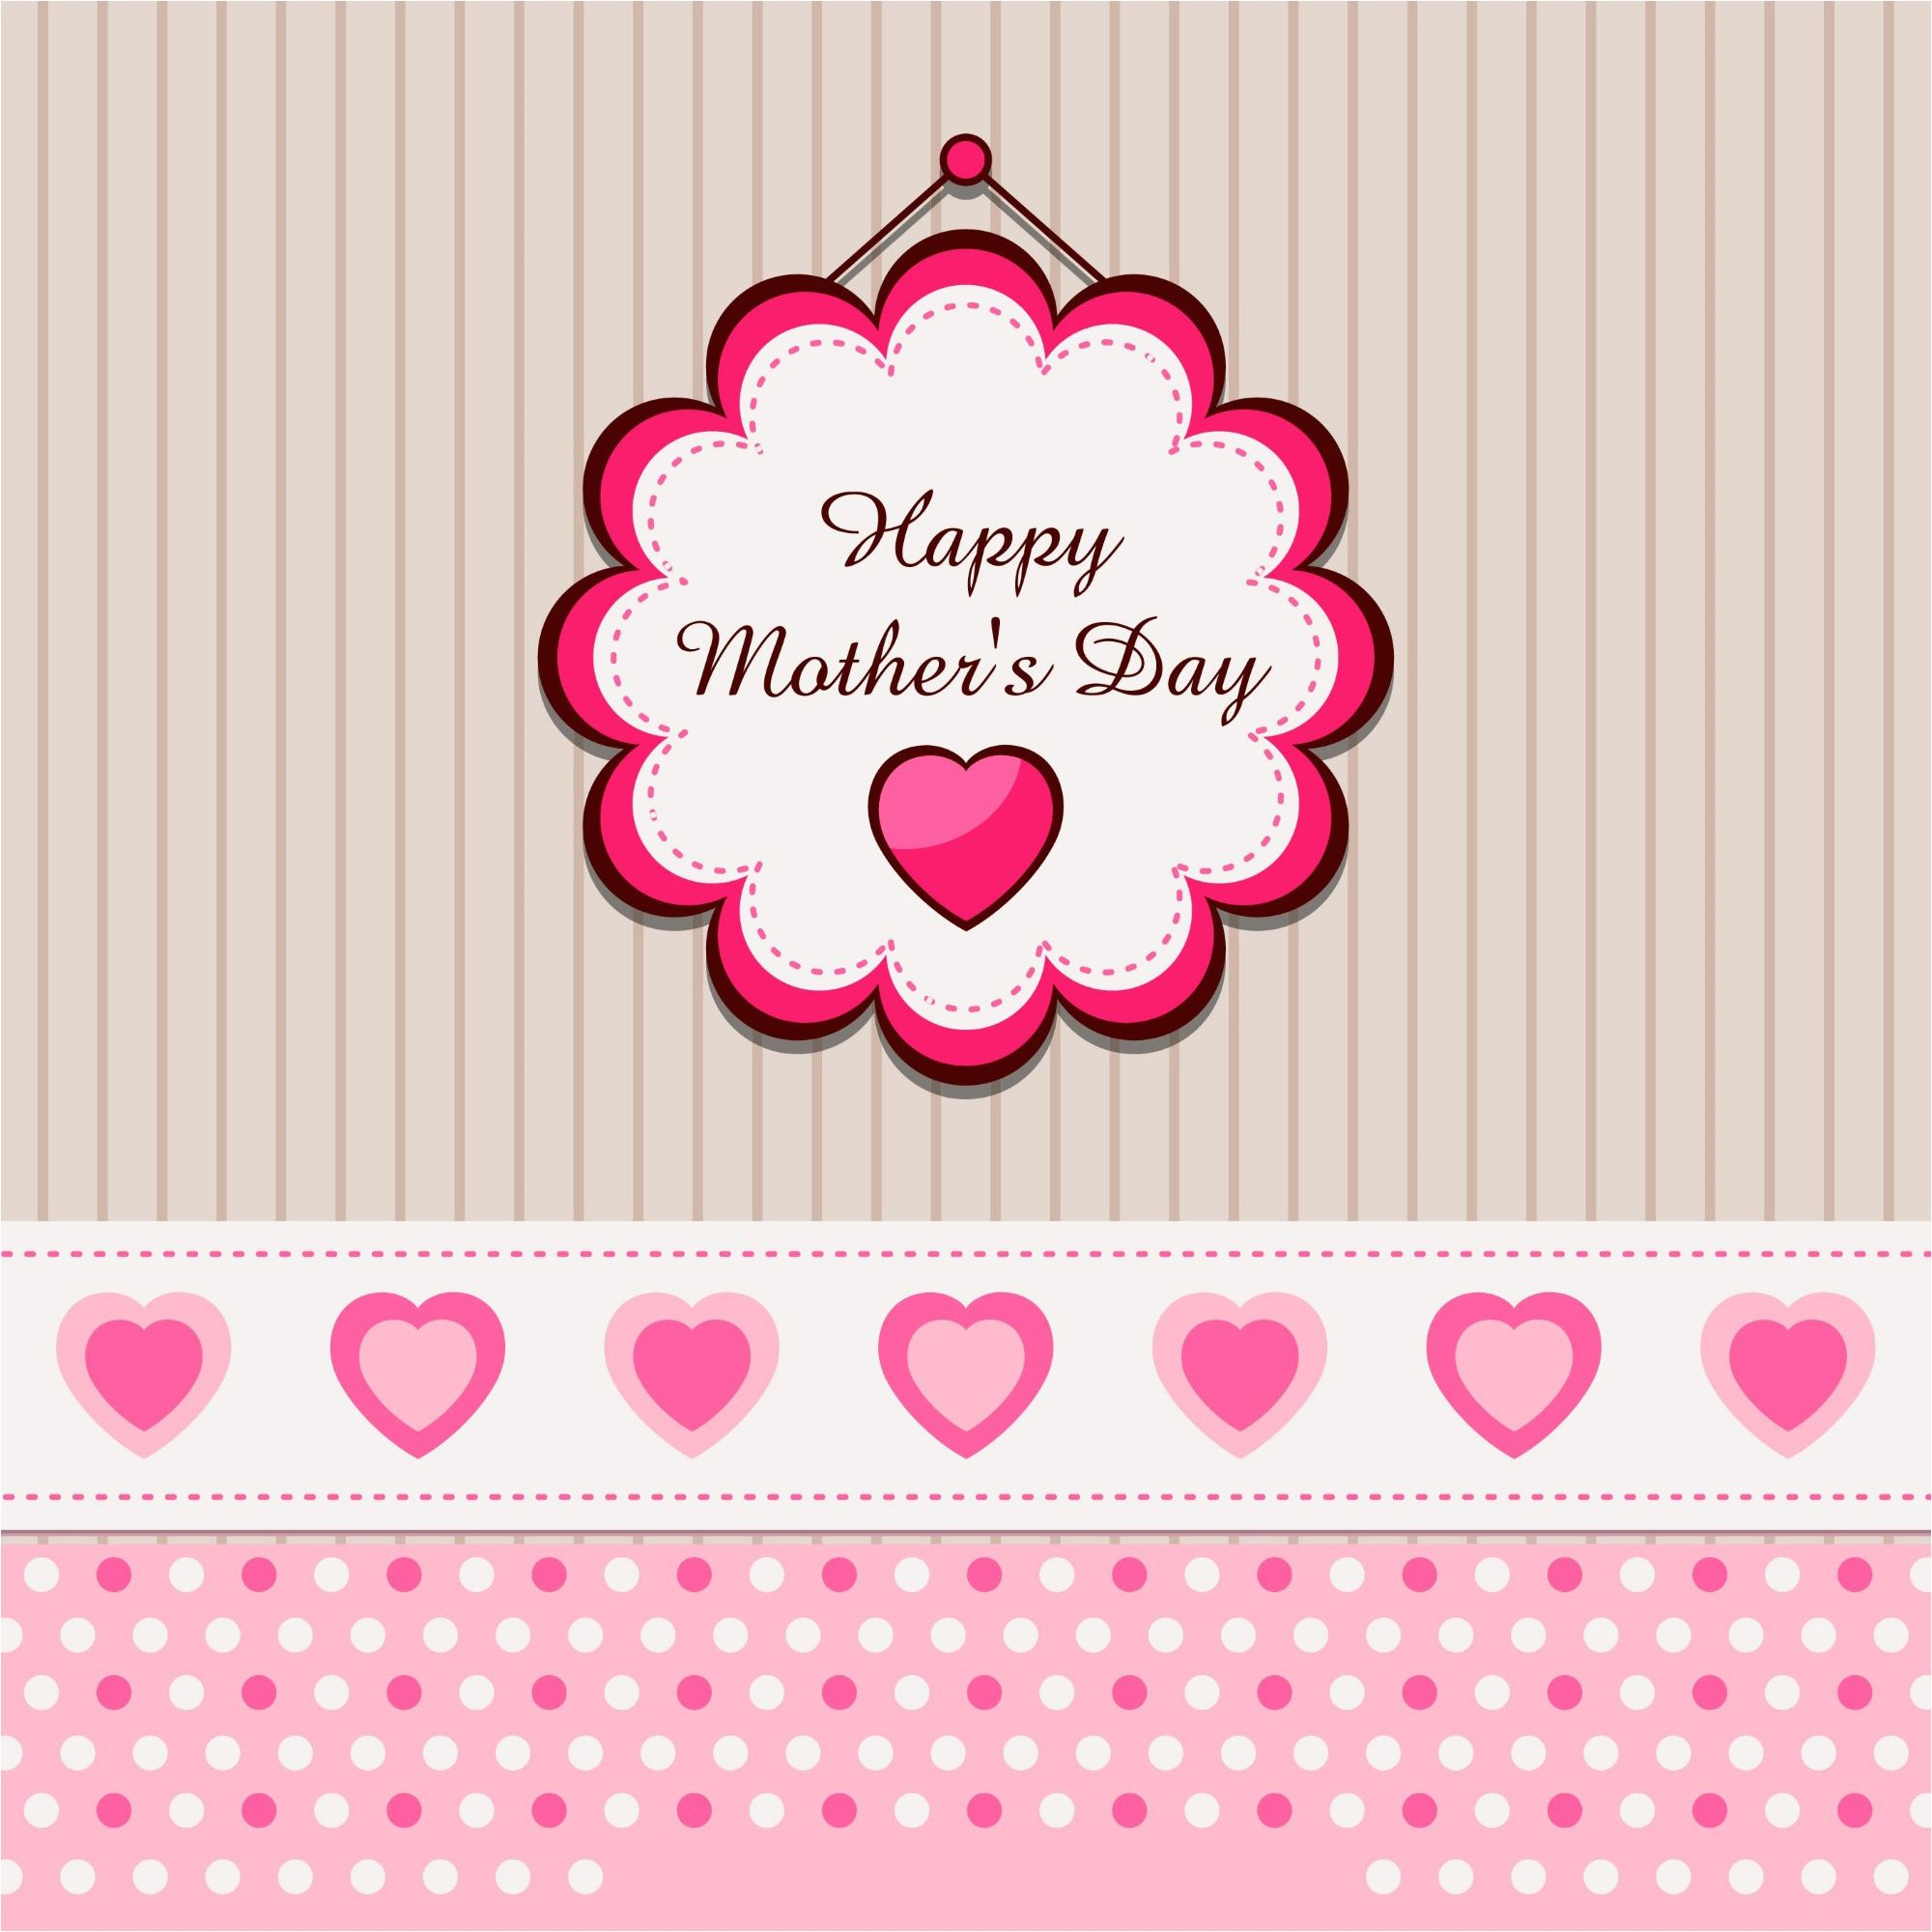 Happy MotherS Day Greeting Card Design Template    Best